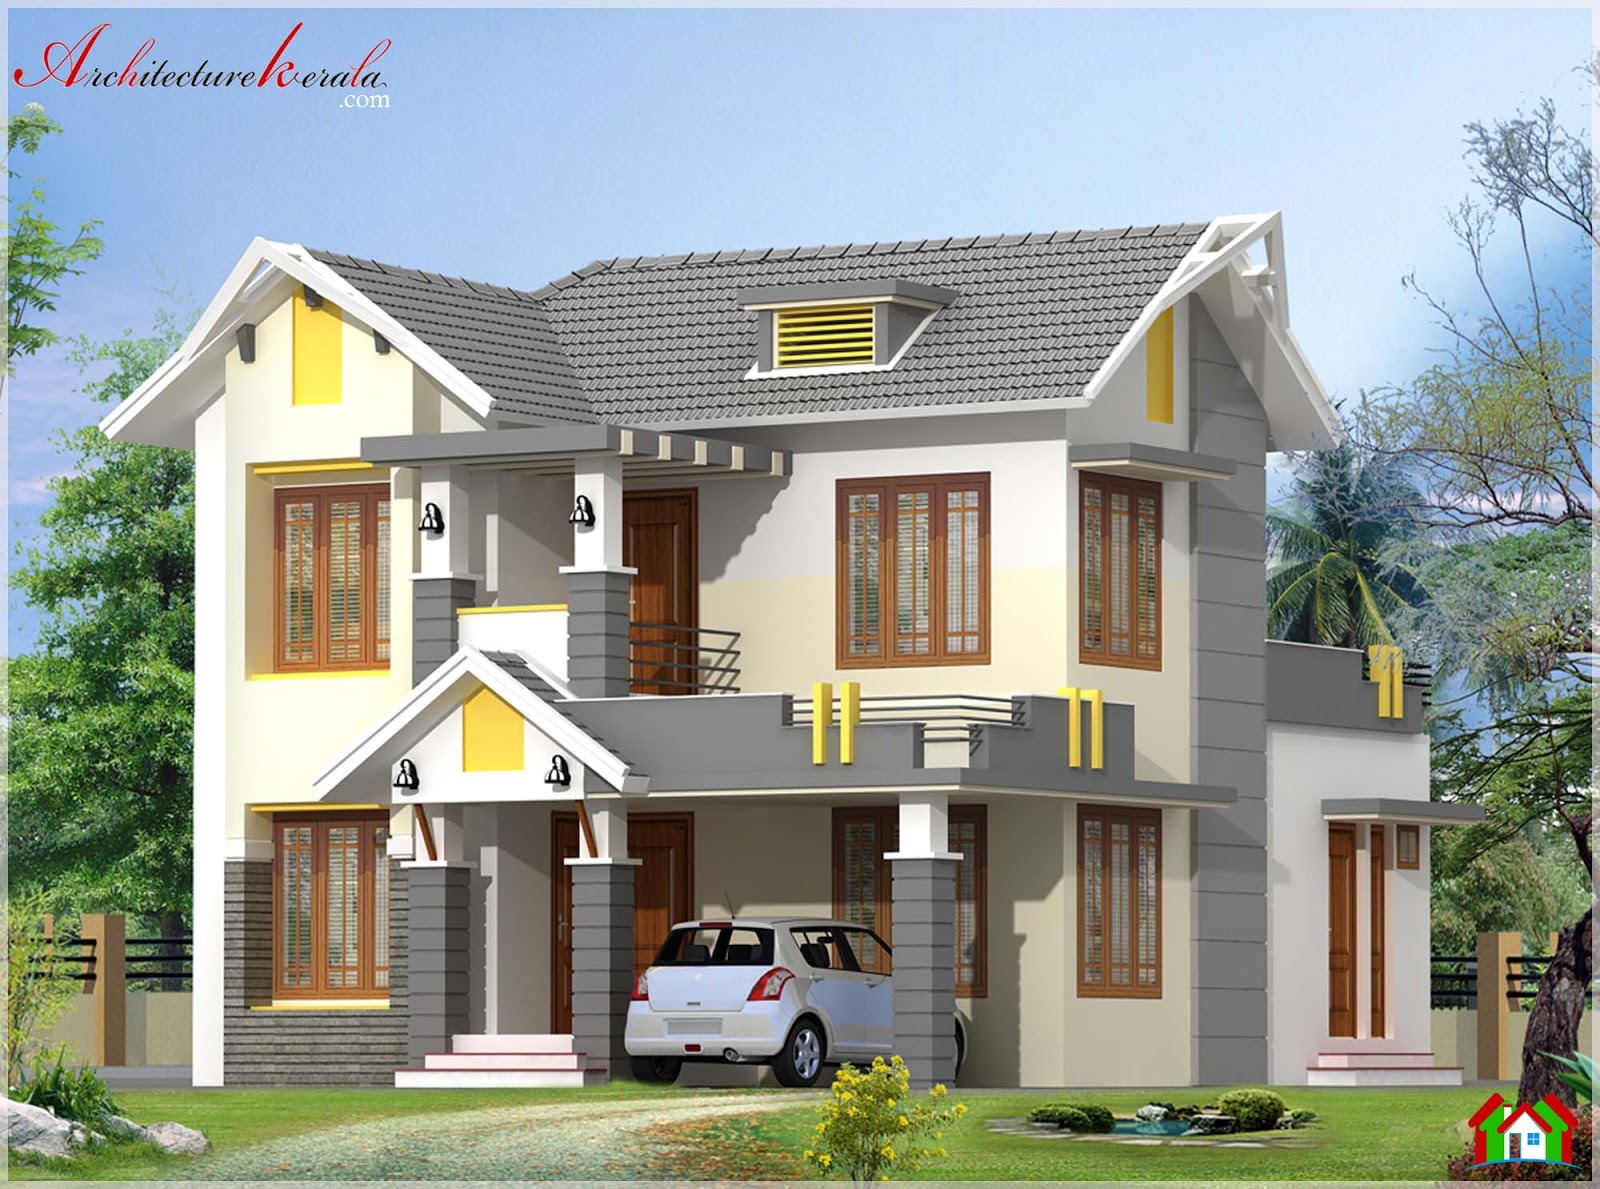 Modern house elevation architecture kerala for Home design sites